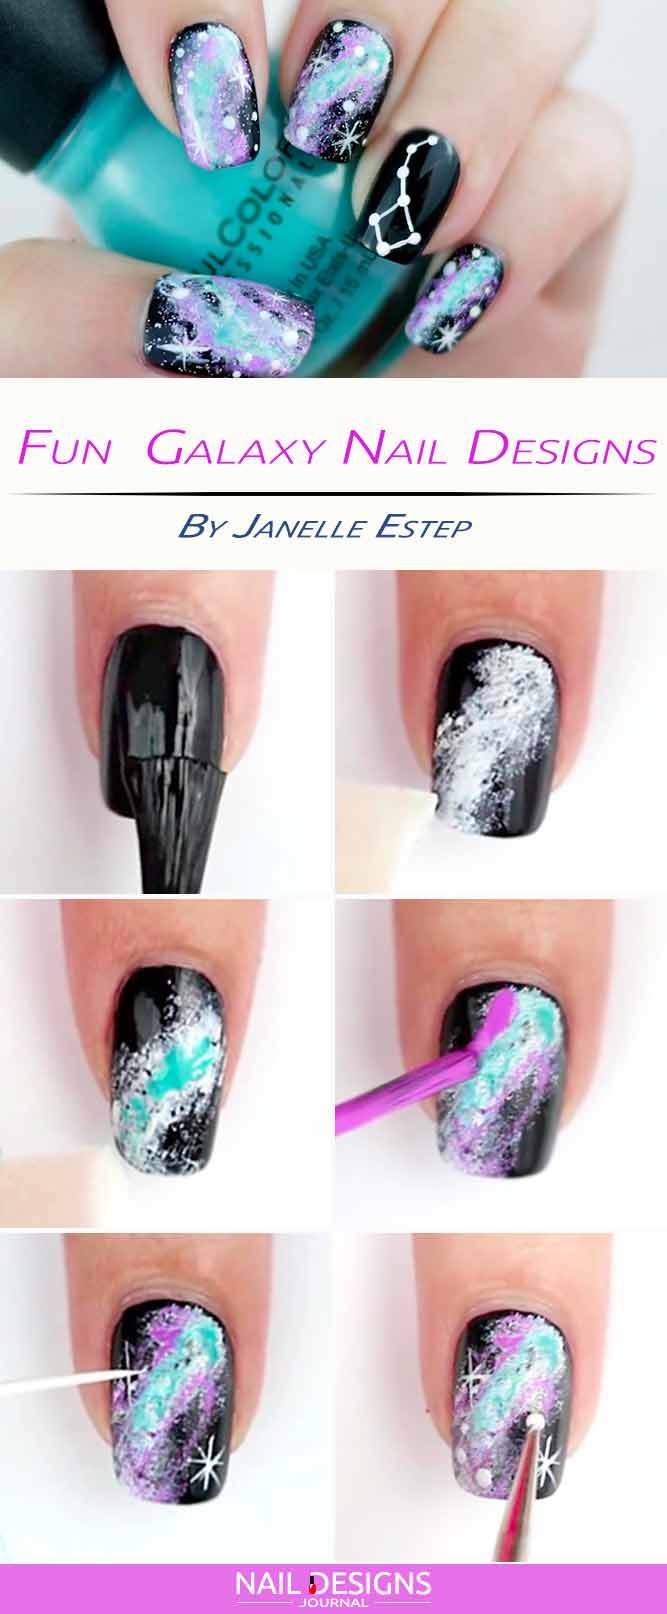 Fun Galaxy Nail Designs